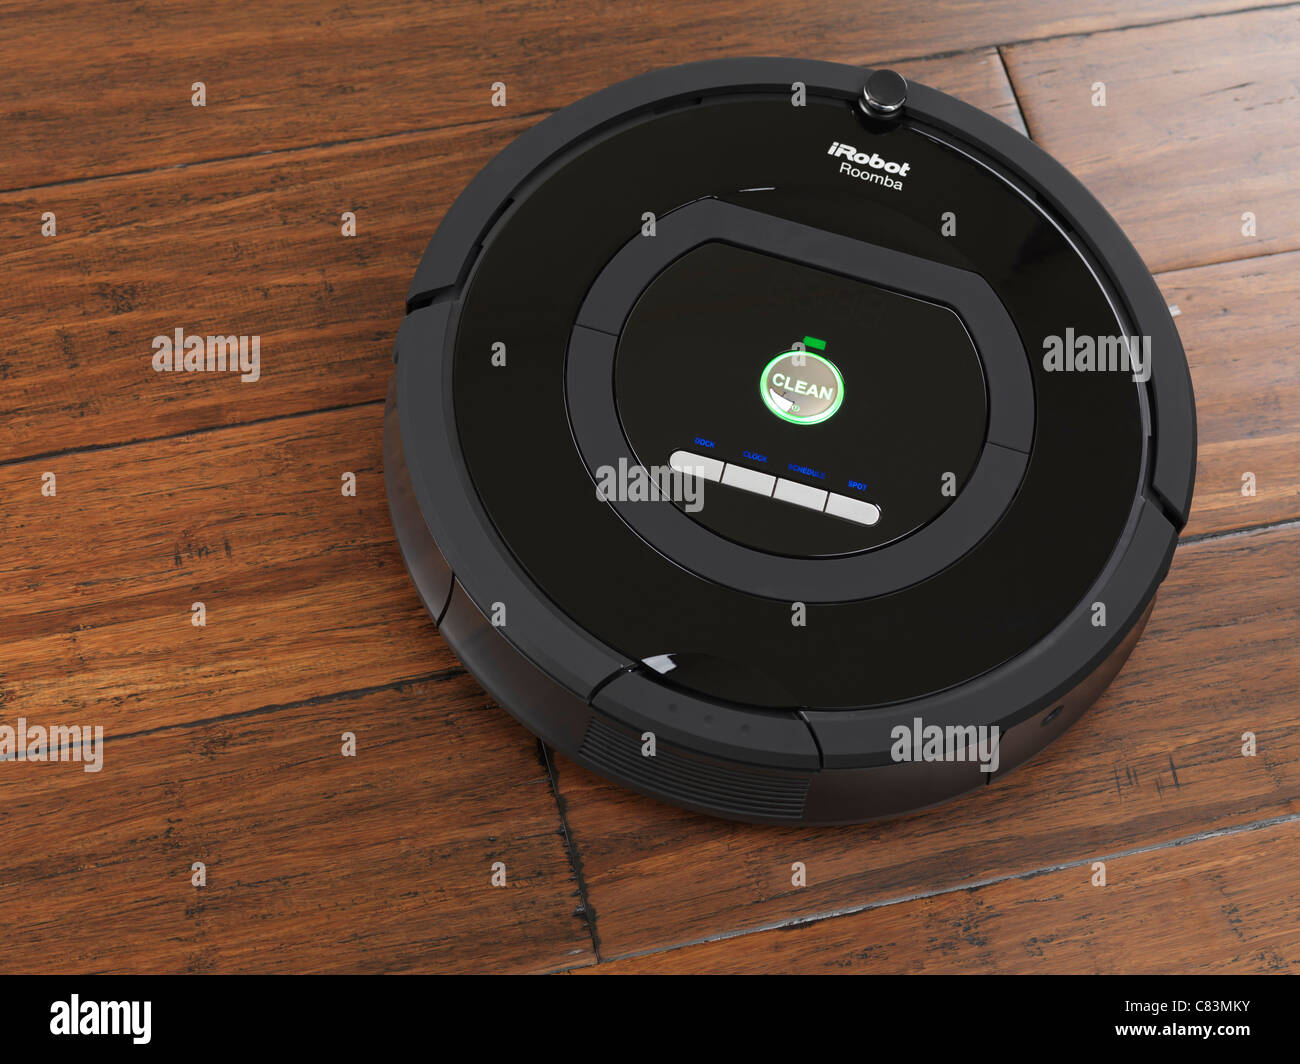 Irobot Roomba 770 Household Vacuum Cleaning Robot On